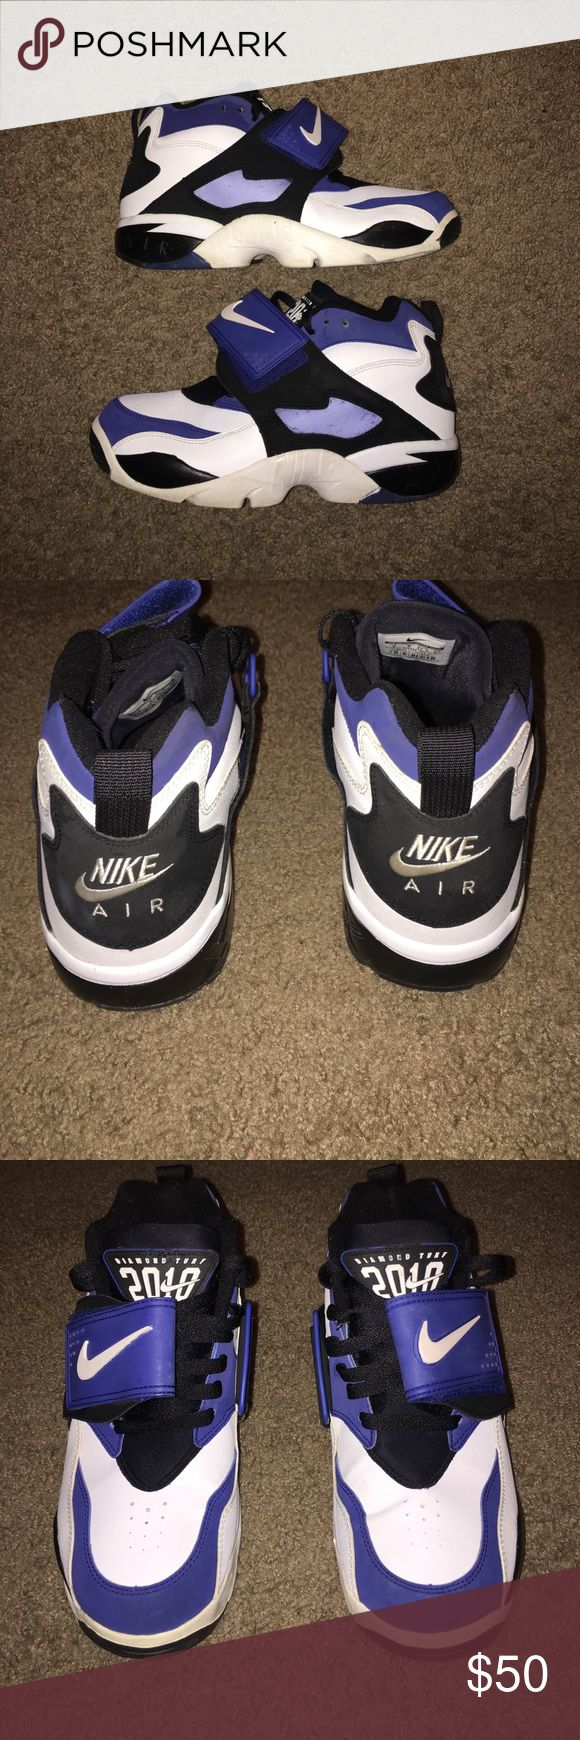 NIKE AIR DIAMOND TURF MENS SIZE 9 NIKE AIR DIAMOND TURF MENS SIZE 9 GOOD CONDITION Nike Shoes Athletic Shoes